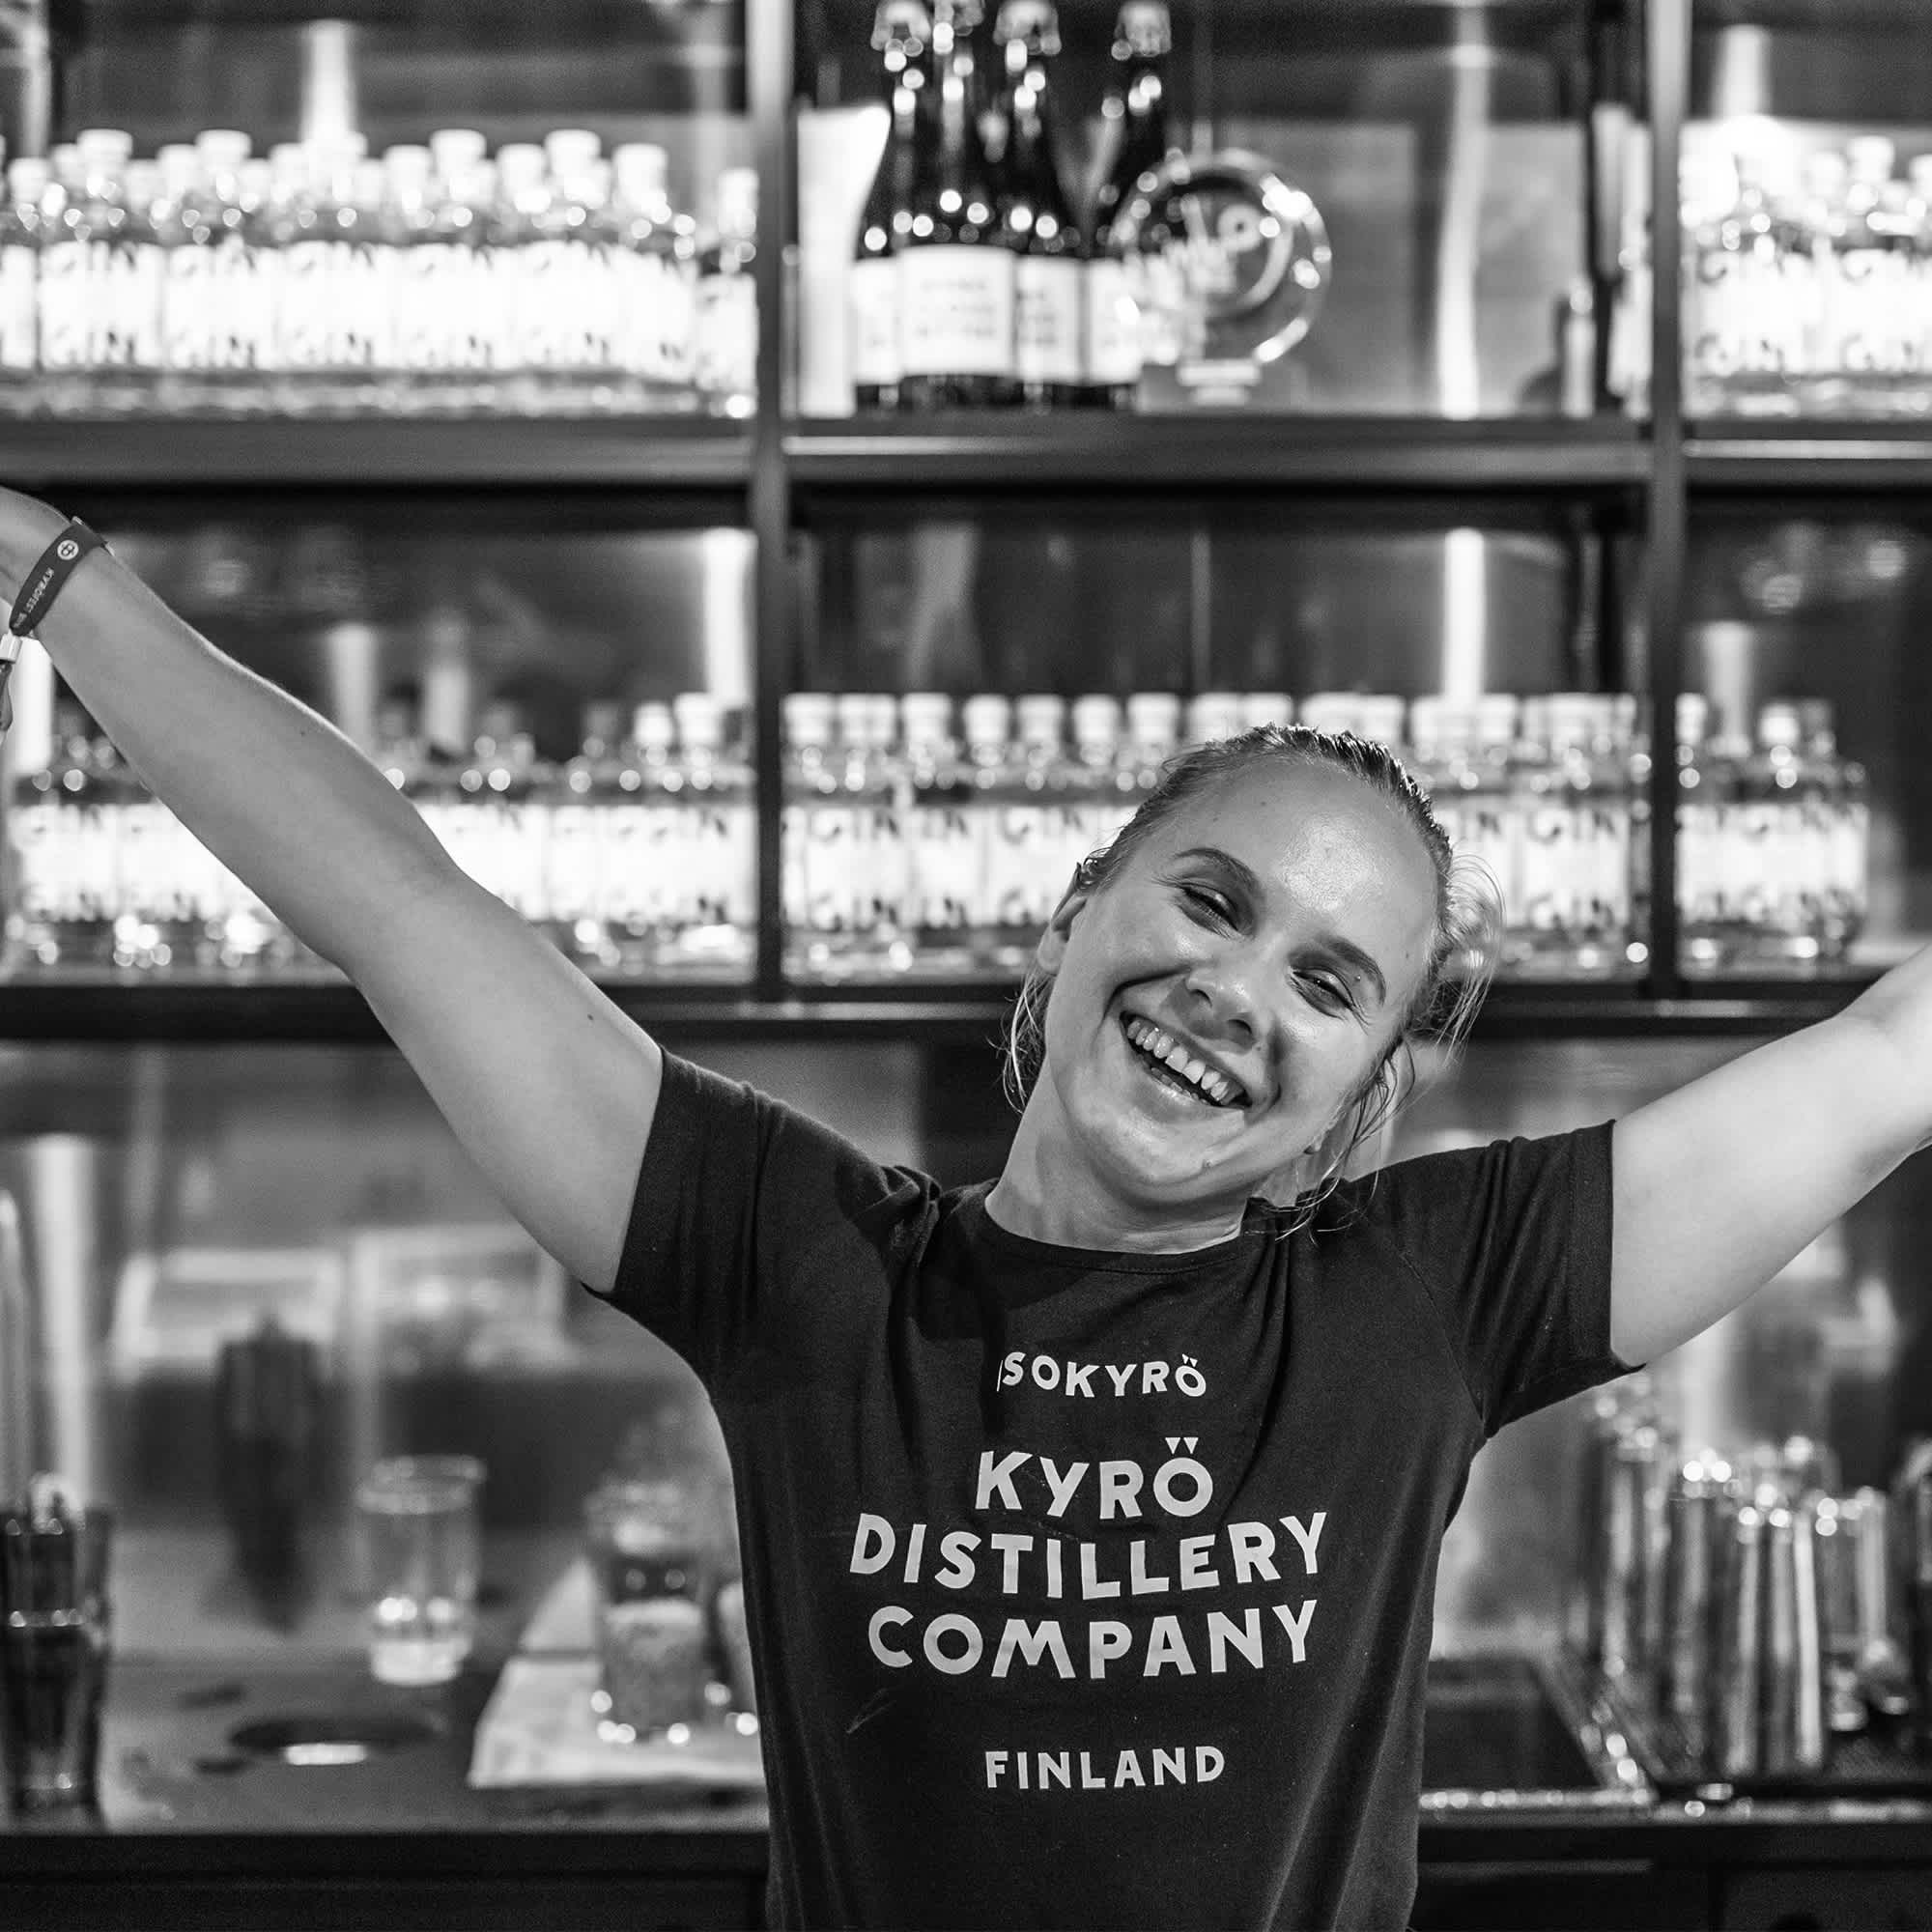 Girl standing in front of a bar wearing Kyrö Distillery t-shirt and smiling.